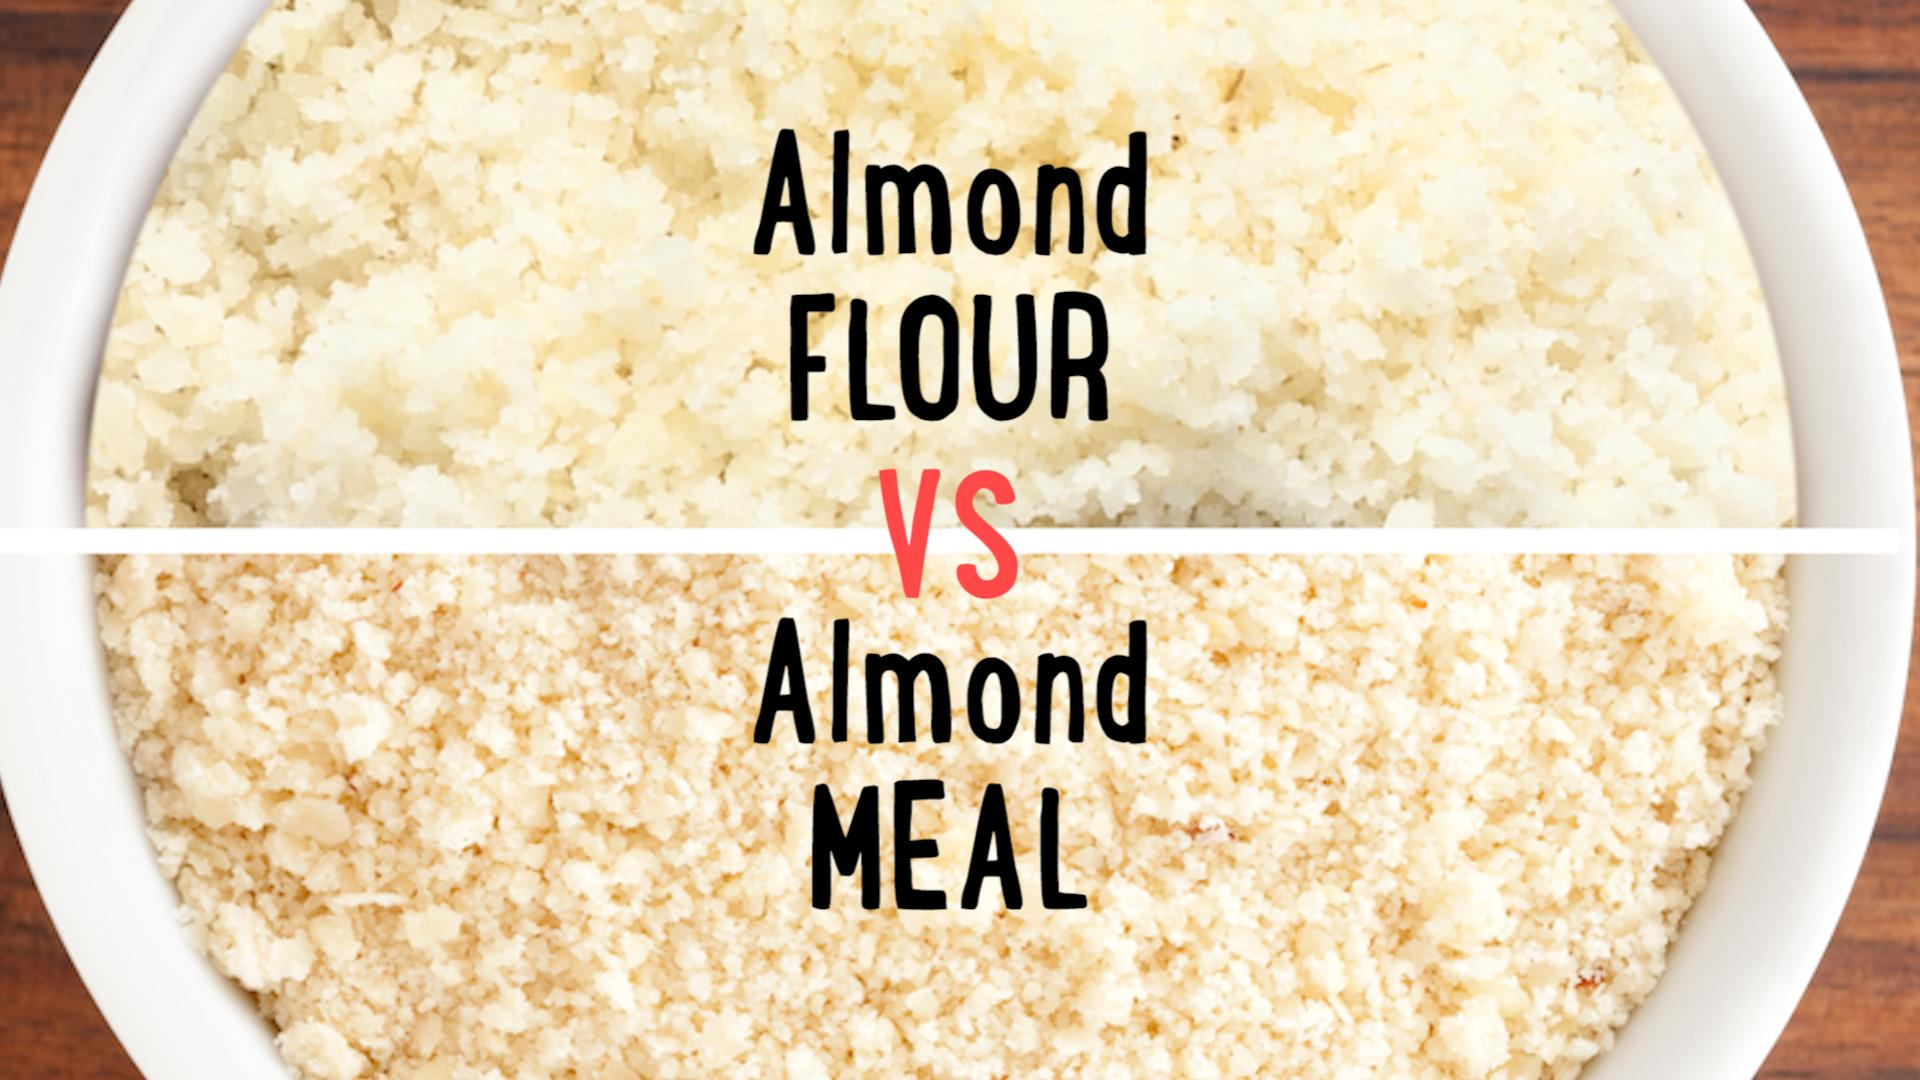 Almond flour and almond meal